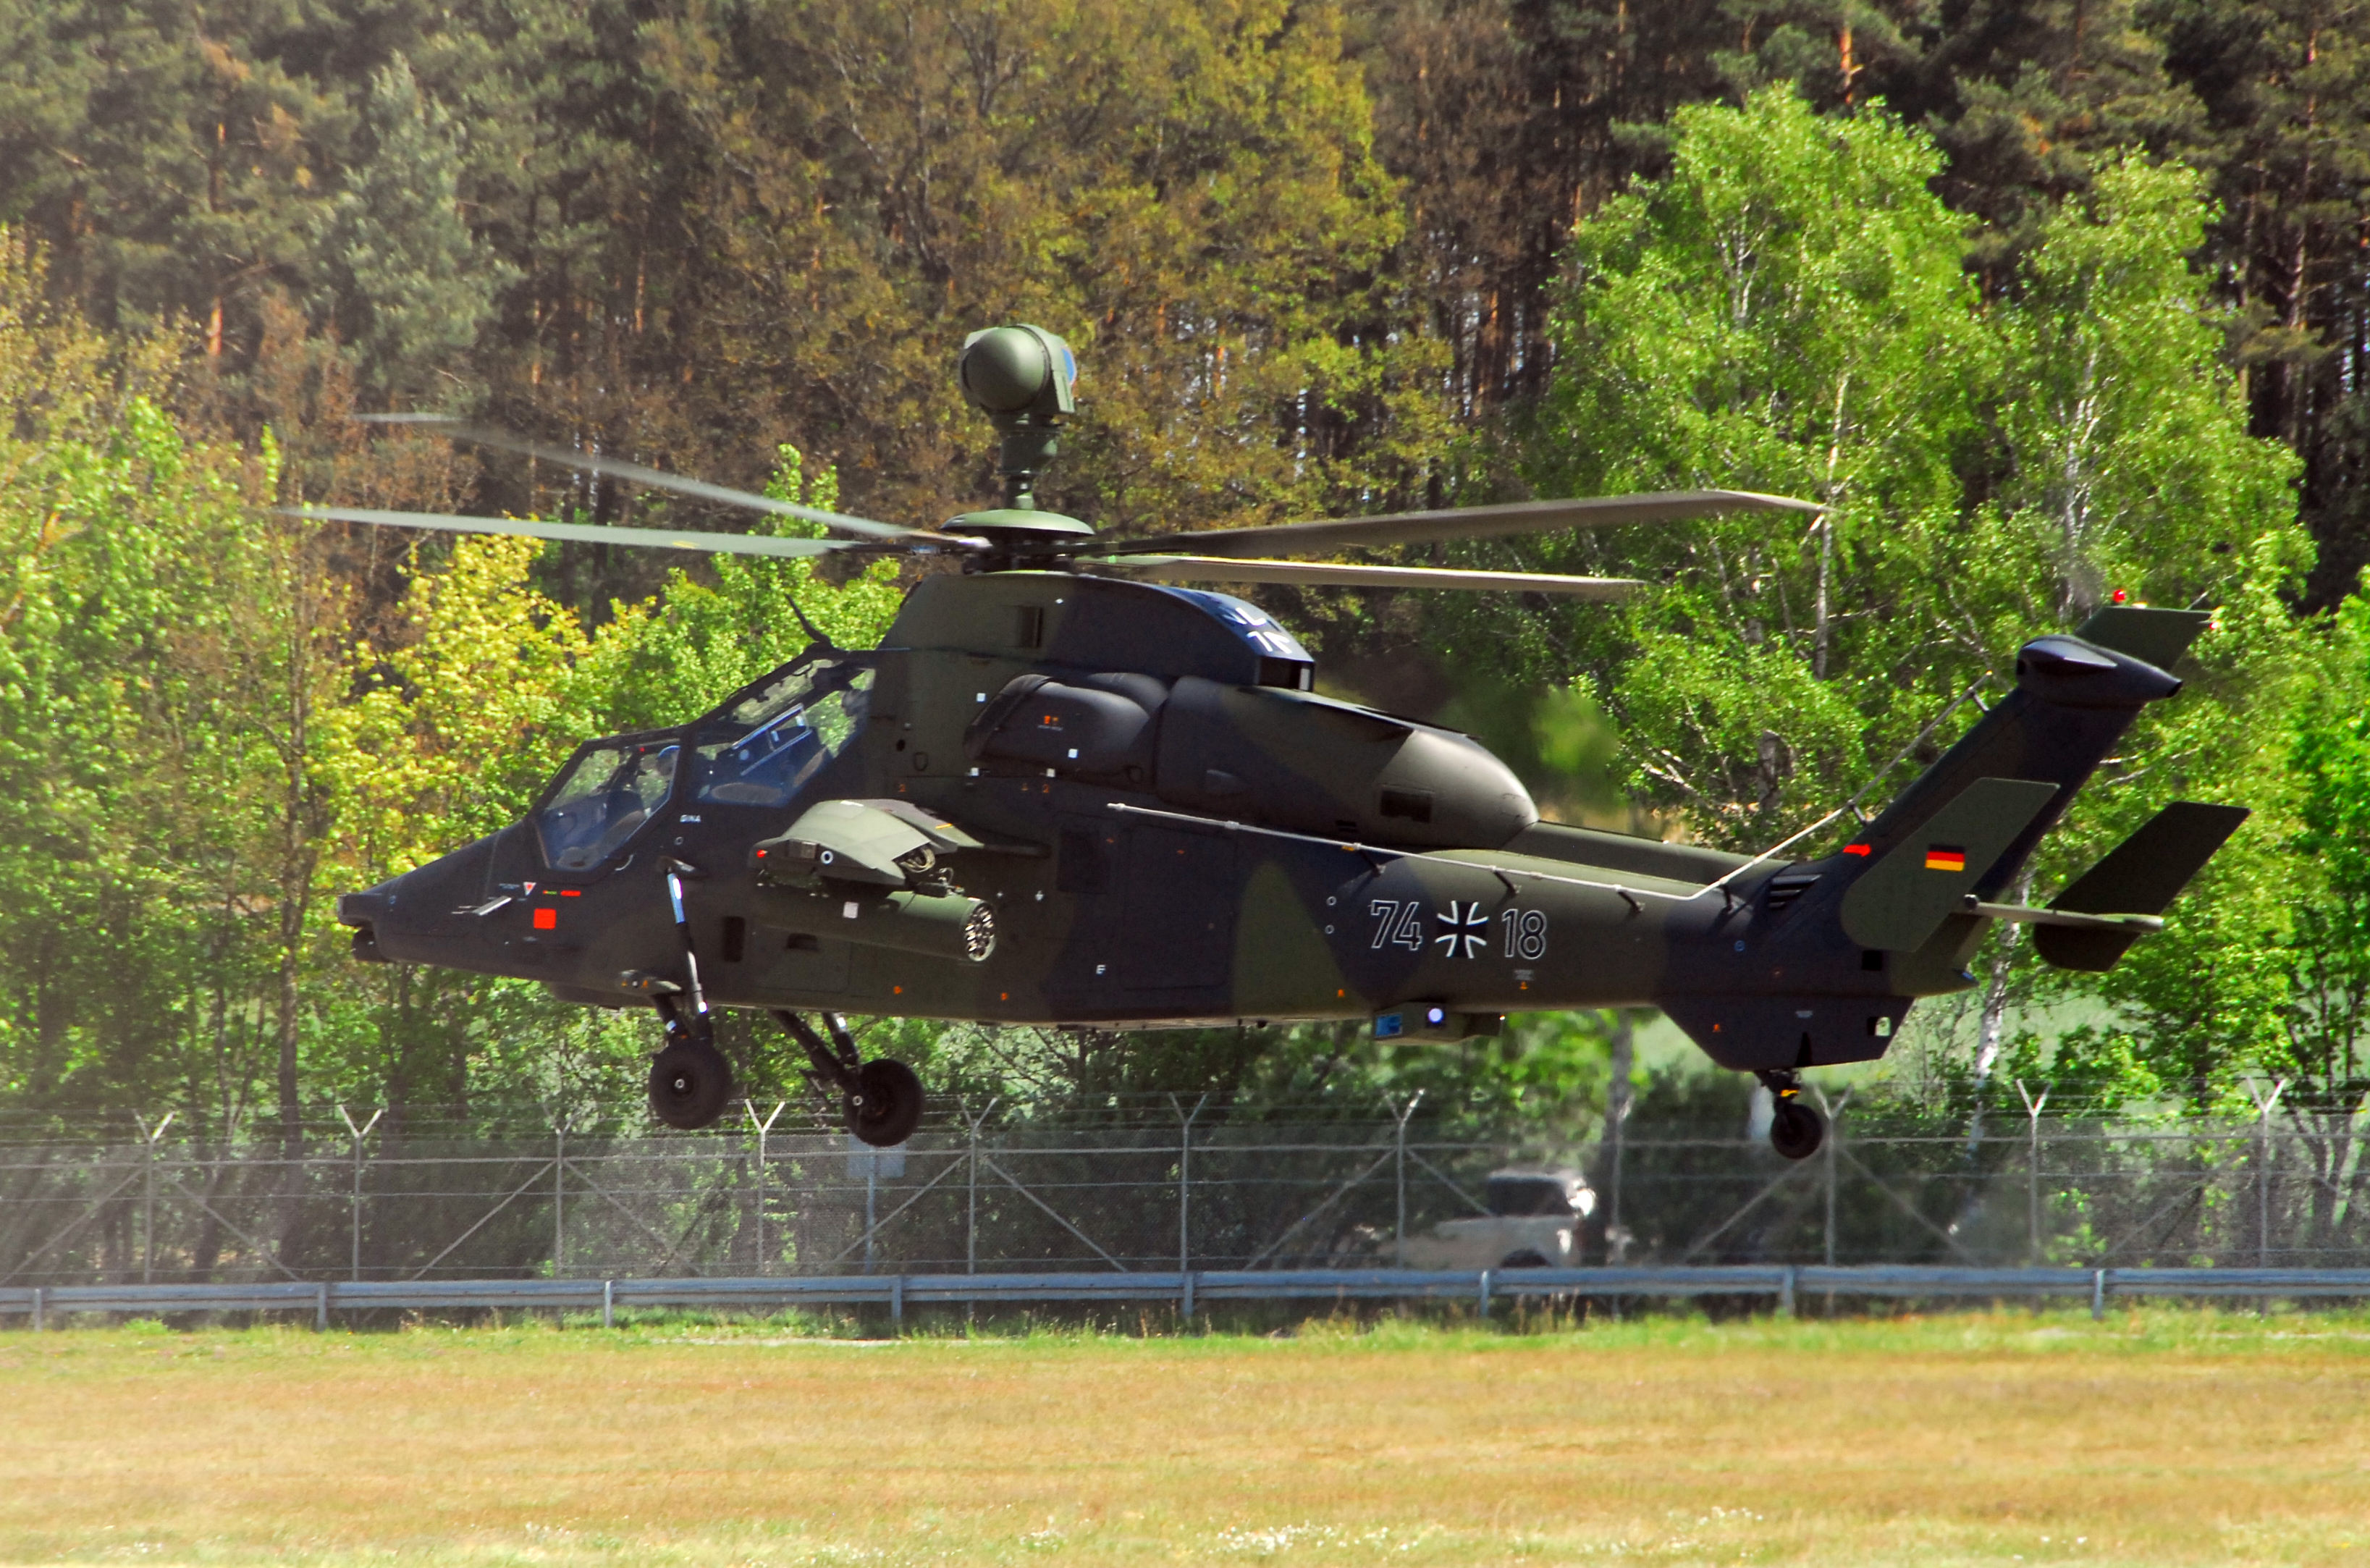 new us helicopter with File German Eurocopter Tiger  2011 on File German Eurocopter Tiger  2011 in addition SH 187 stealth helicopter furthermore 20892151028 likewise Dd62 Katrina furthermore H 19 walk1.